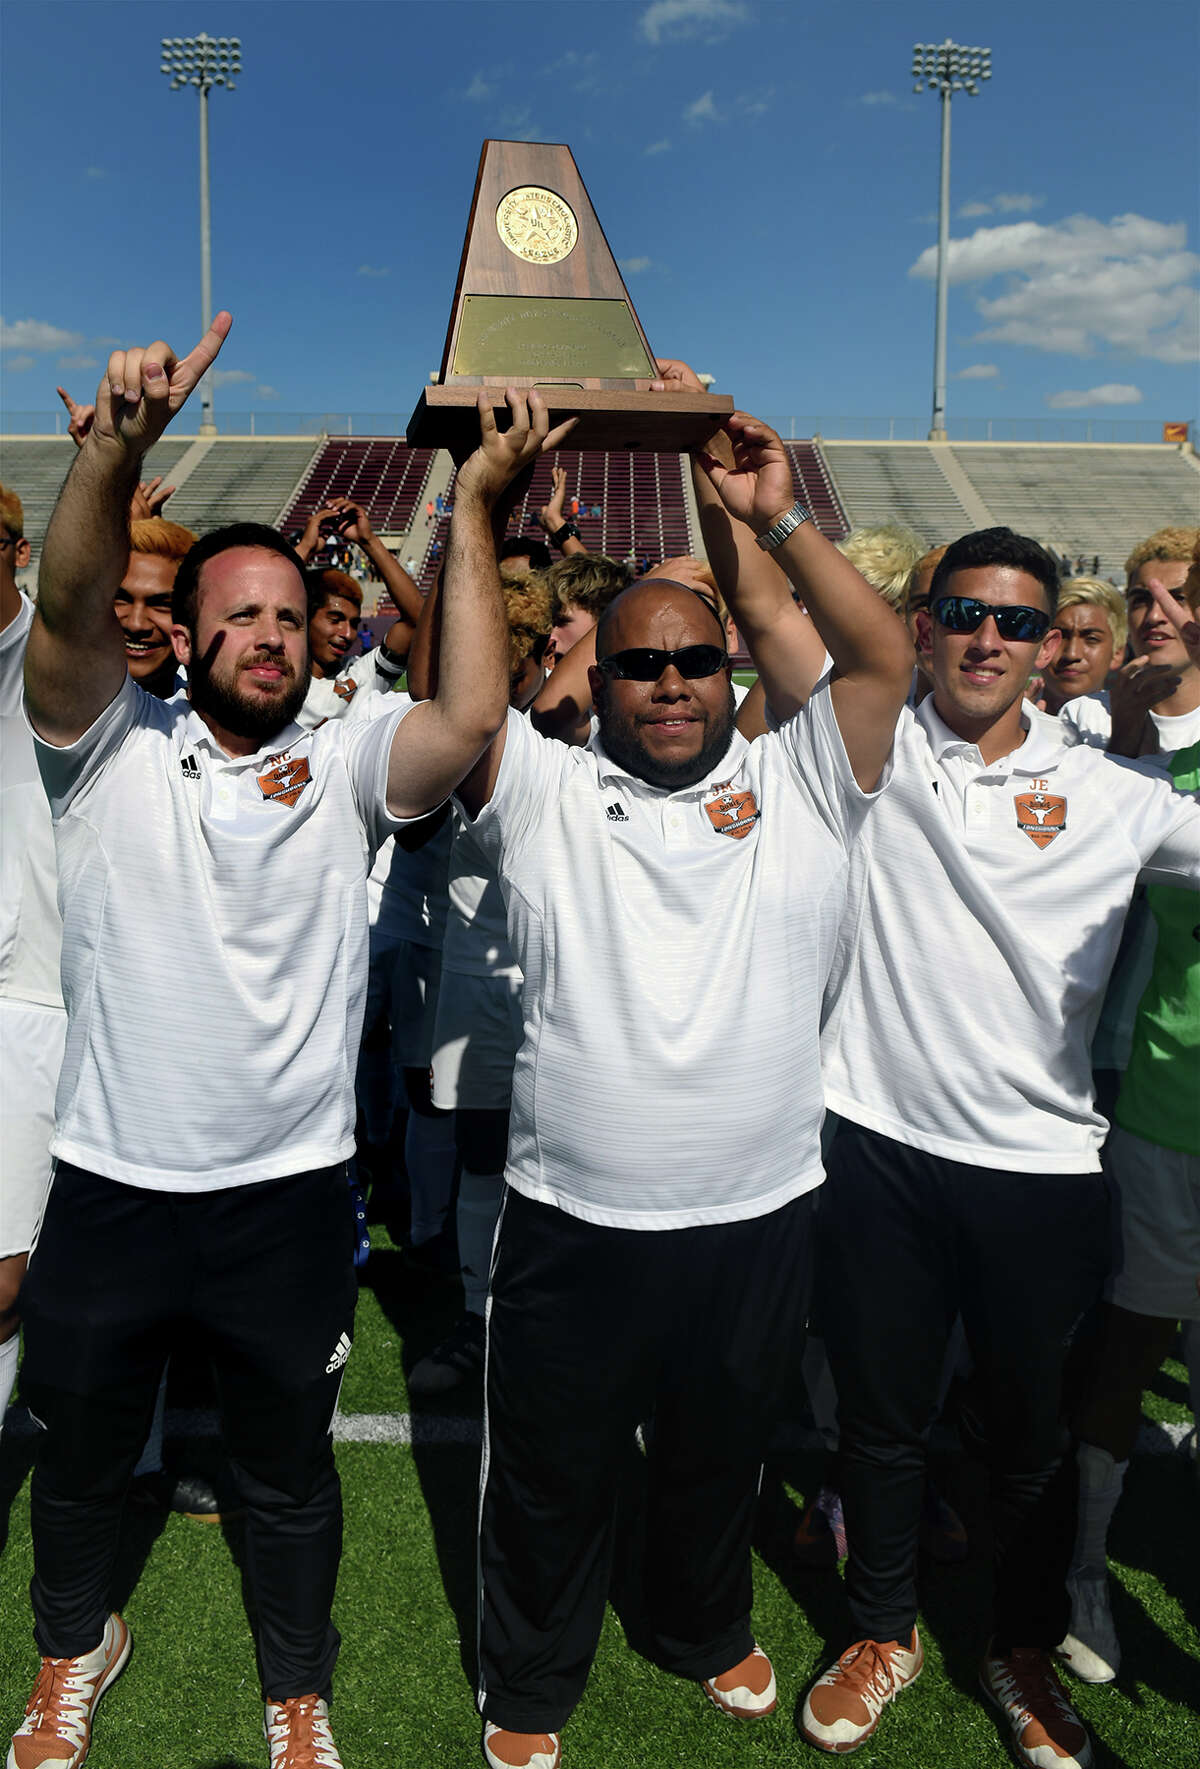 Dobie Head Boys Soccer Coach Justo Manrique, center, flanked by Assistant Coaches Jose Esparza, left, and Nicolas Condon, right, hoists the Region III-6A Boys Championship trophy won by the Longhorns in a shootout over the Channelview Falcons in their finals matchup at Abshier Stadium in Deer Park on Saturday, April 8, 2017. (Photo by Jerry Baker/Freelance)